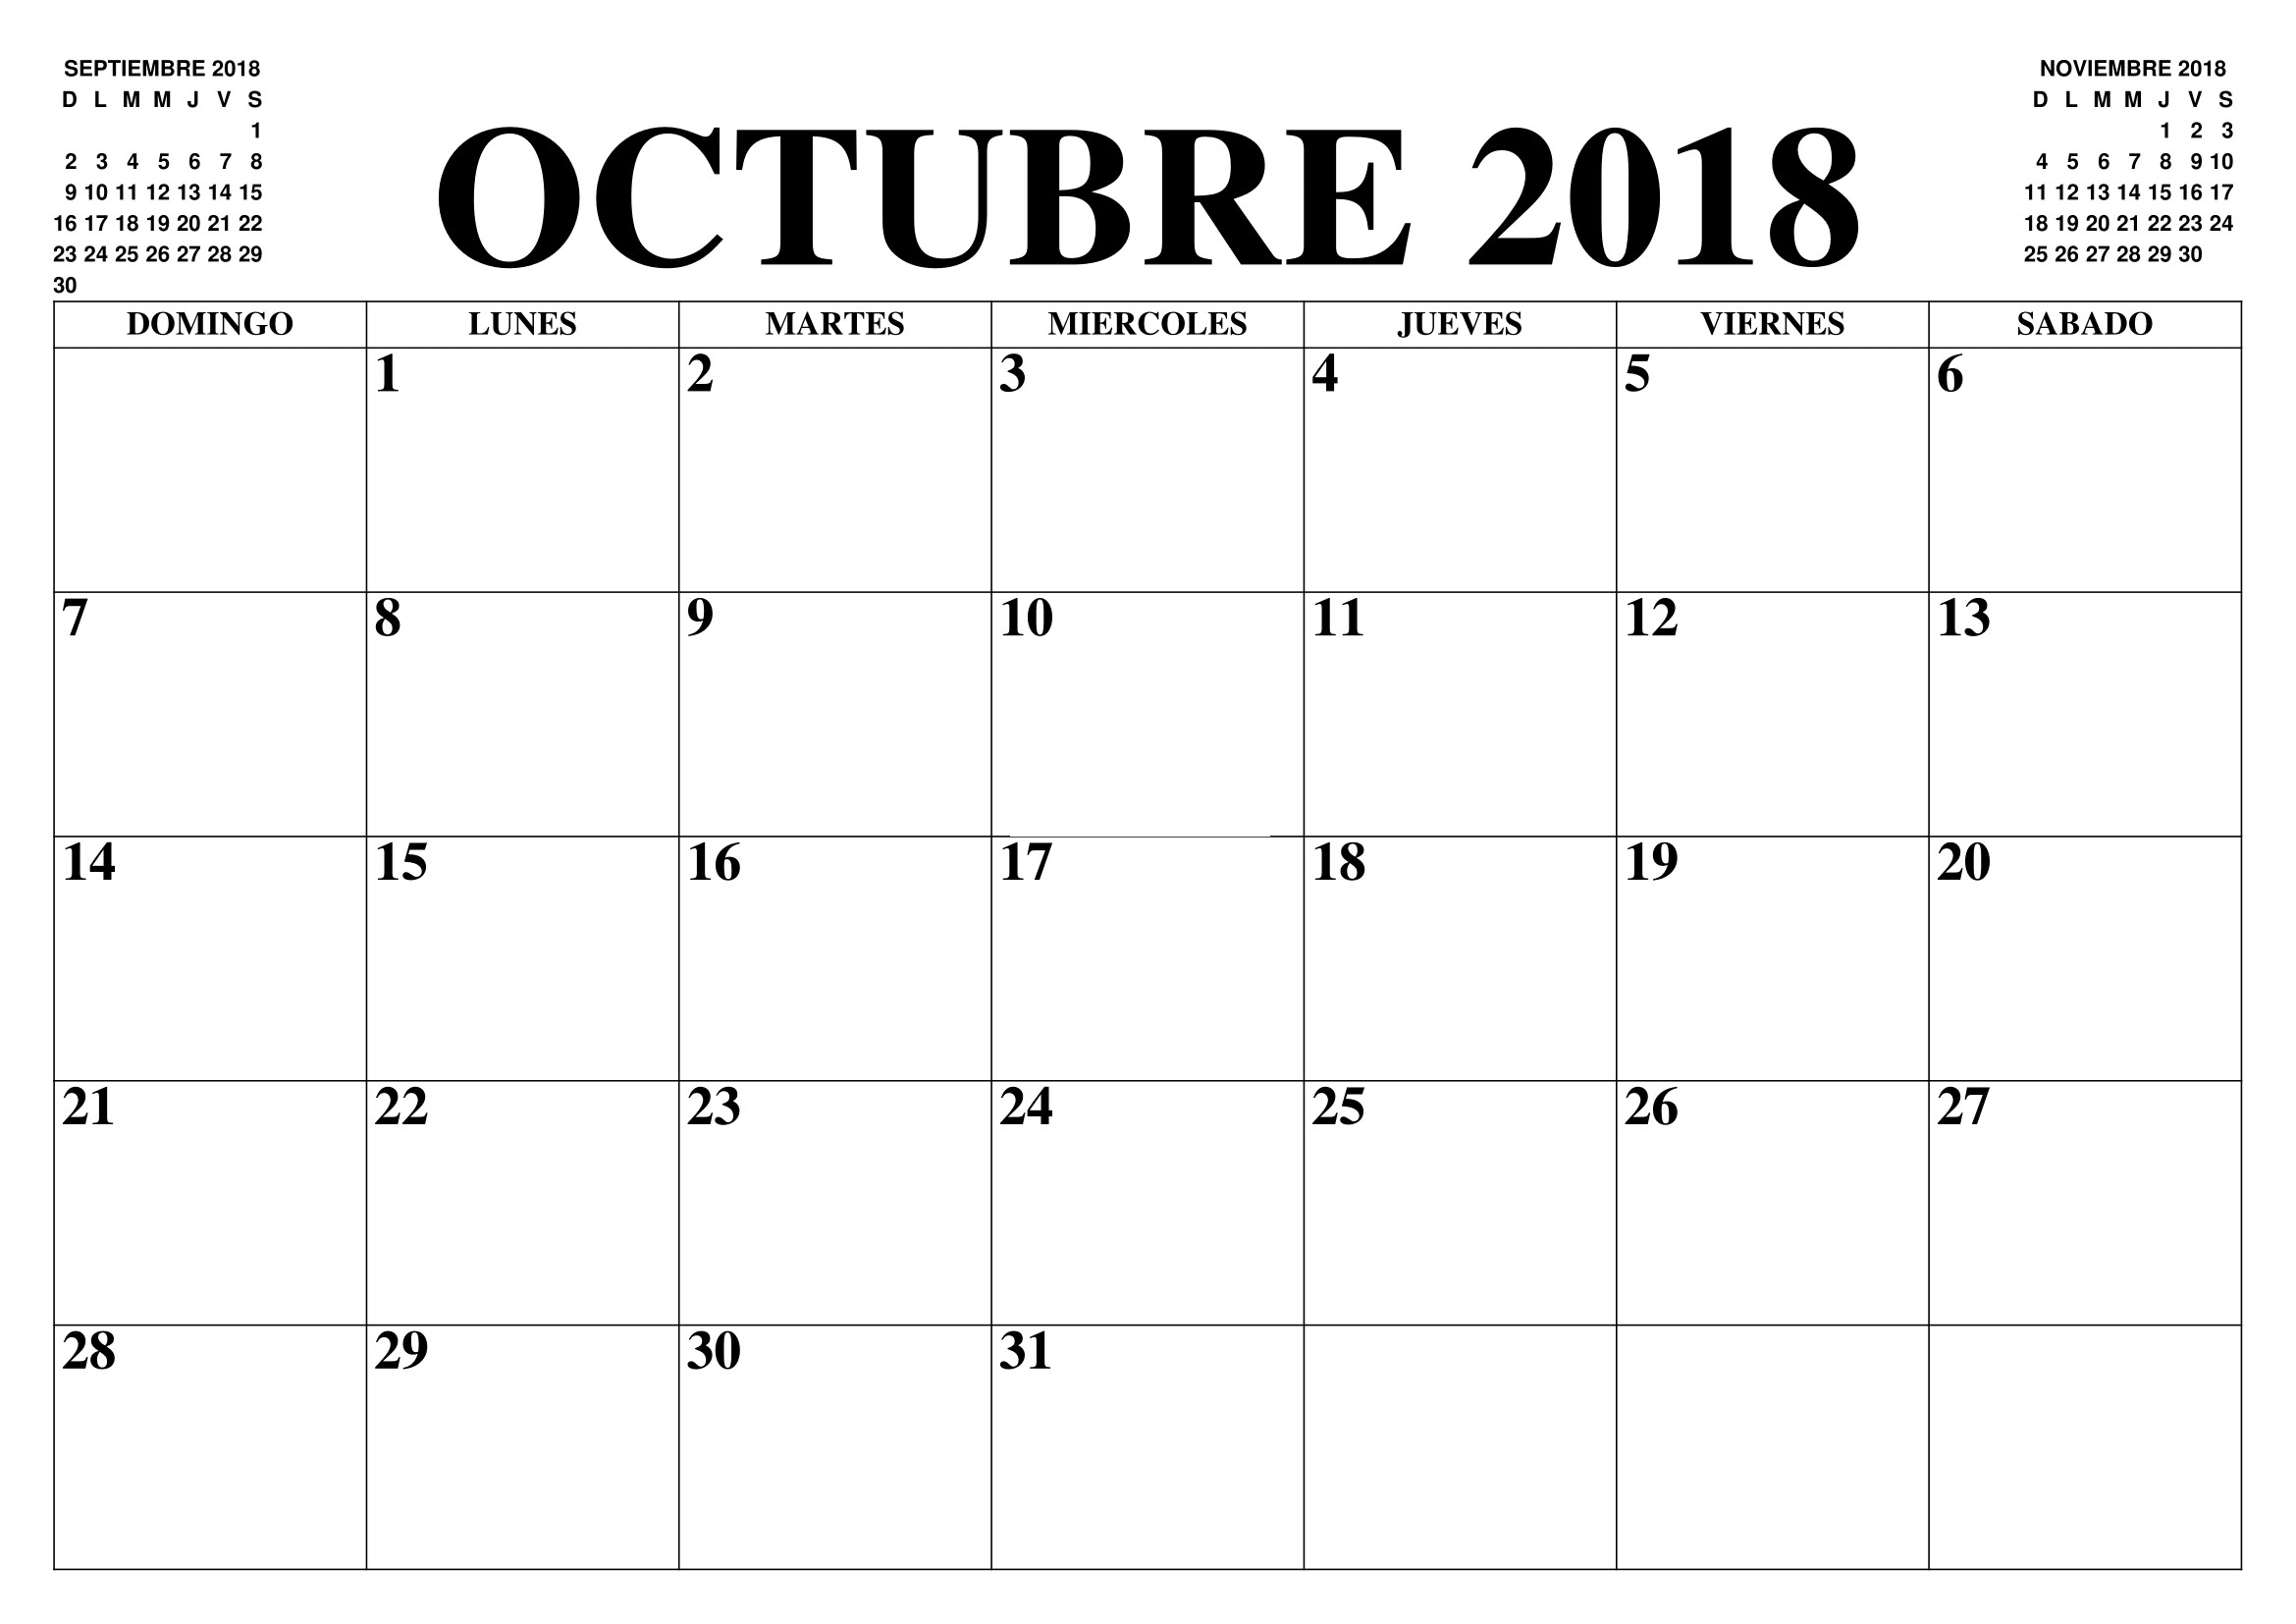 Calendario 2017 En Word Para Imprimir Más Caliente Calendario 2018 Octubre Para Imprimir Of Calendario 2017 En Word Para Imprimir Más Reciente Calendario 2018 De Harry Potter Para Imprimir Gratis